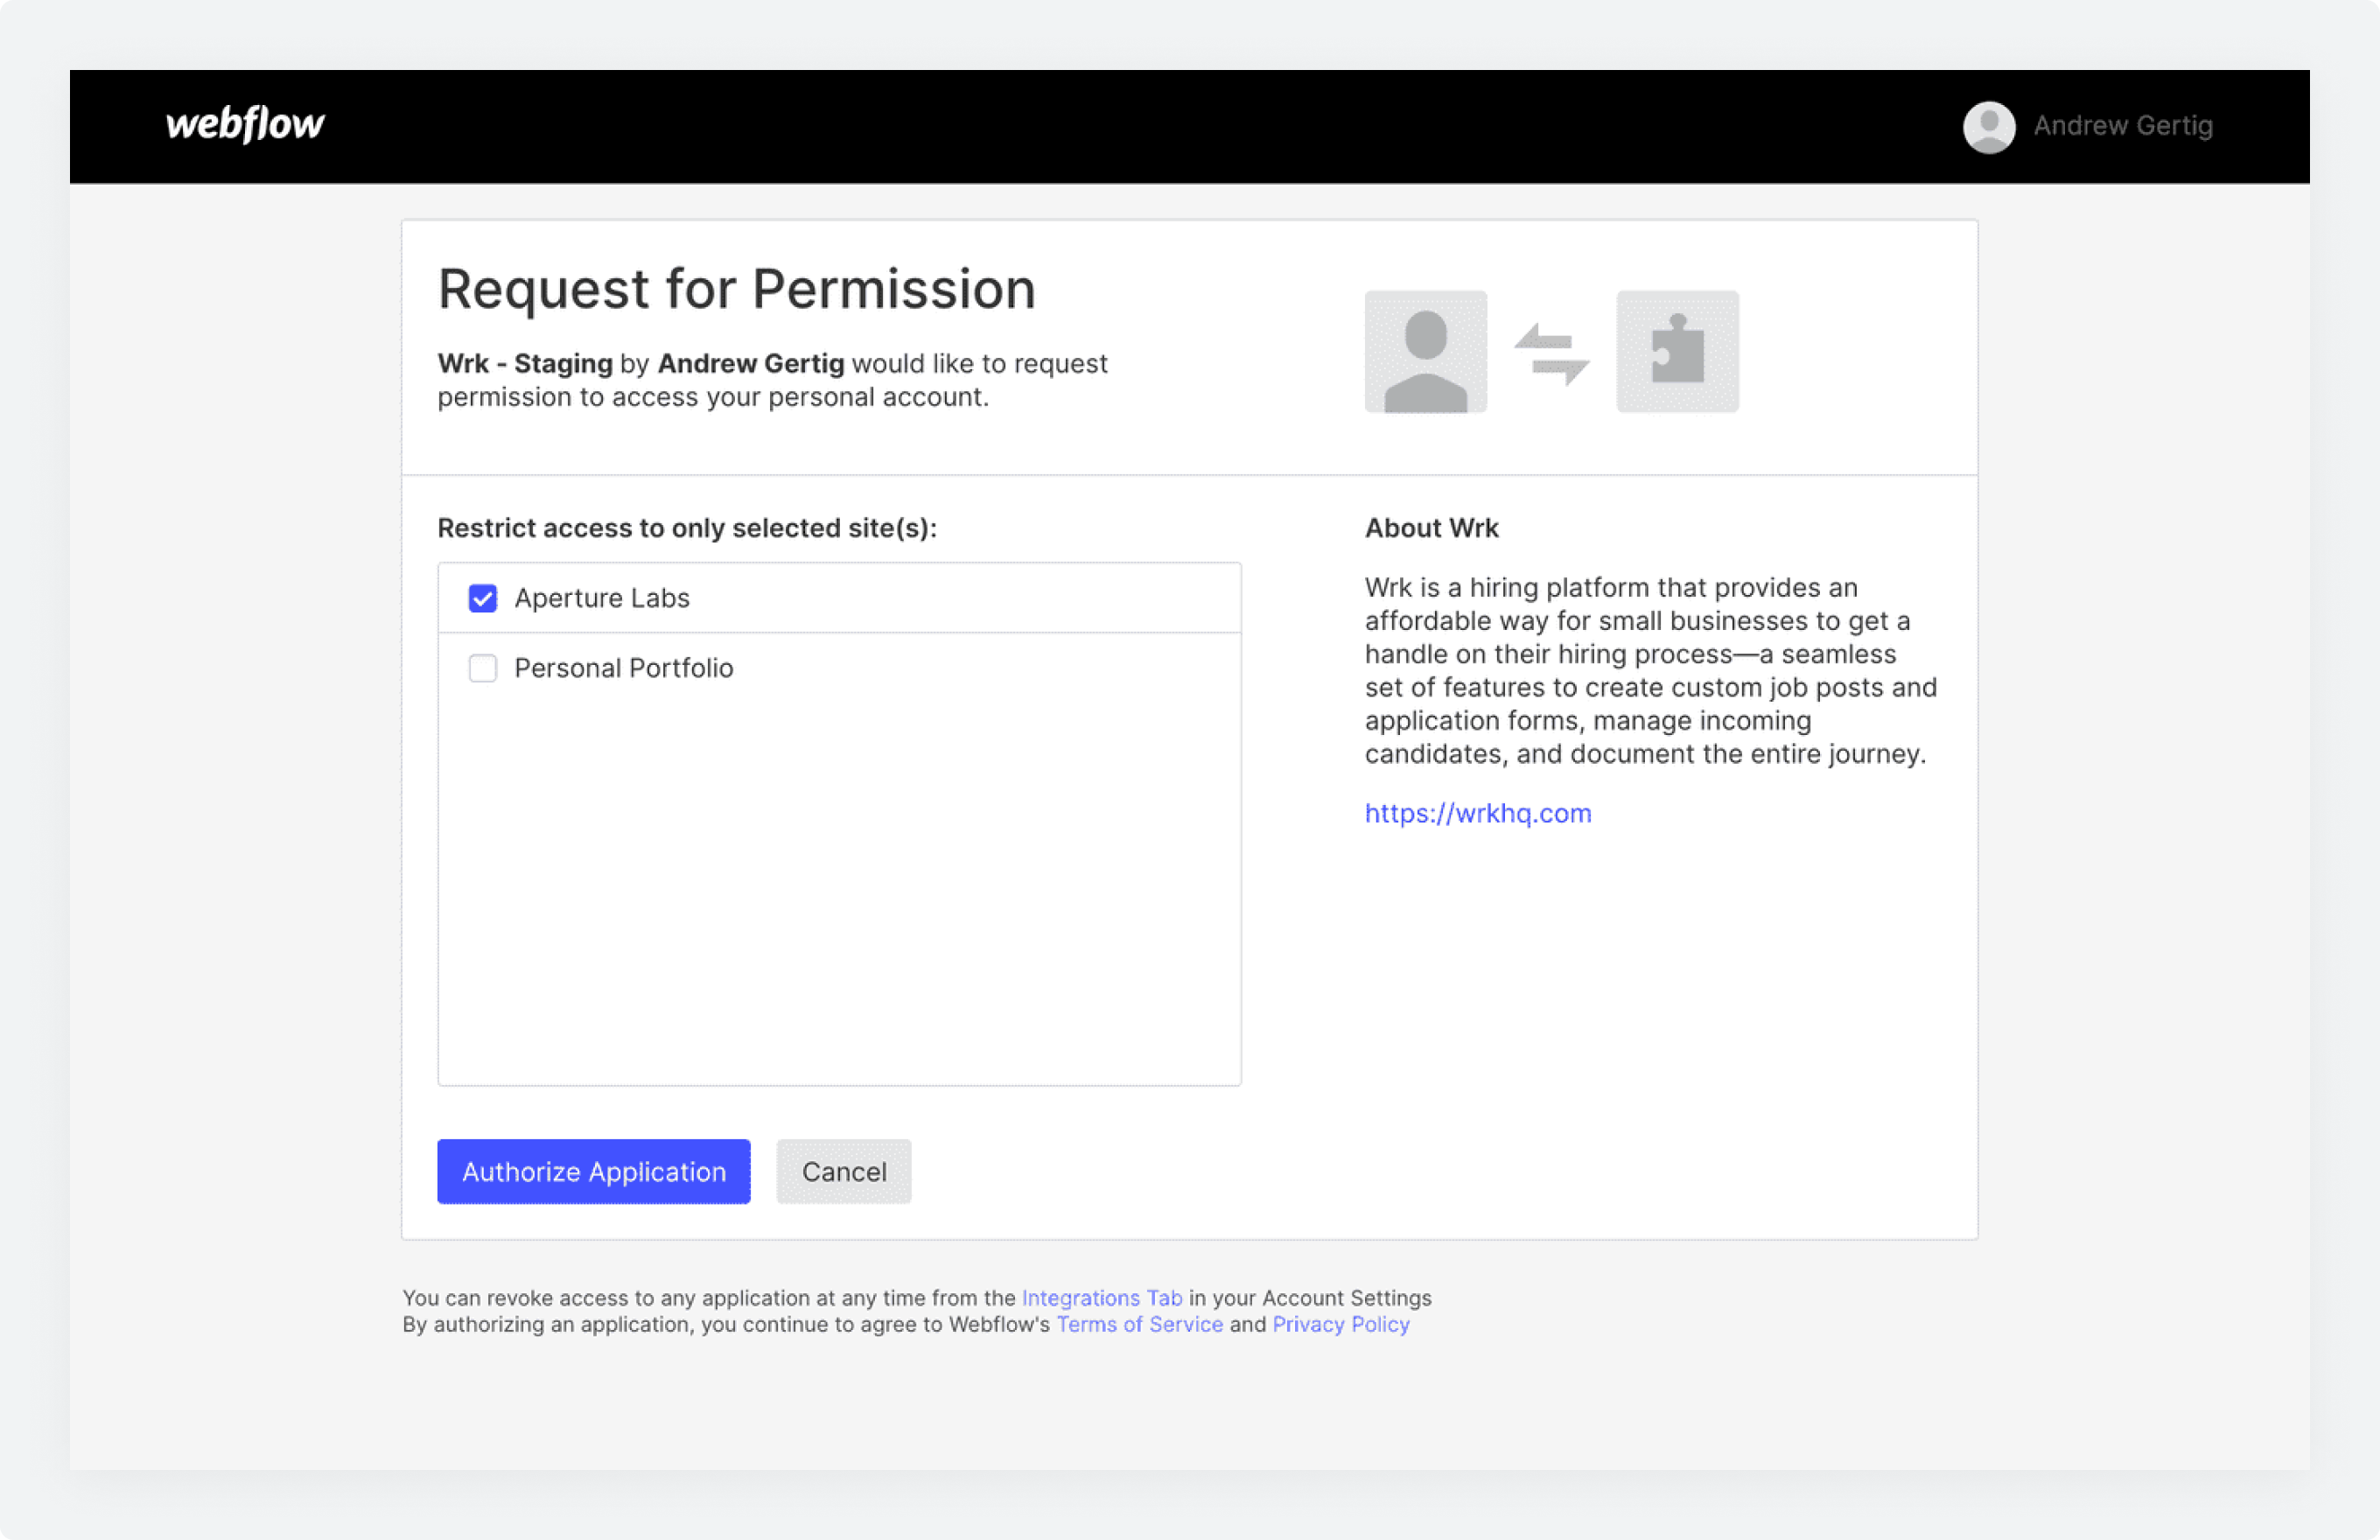 The Request for Permission screen in Webflow